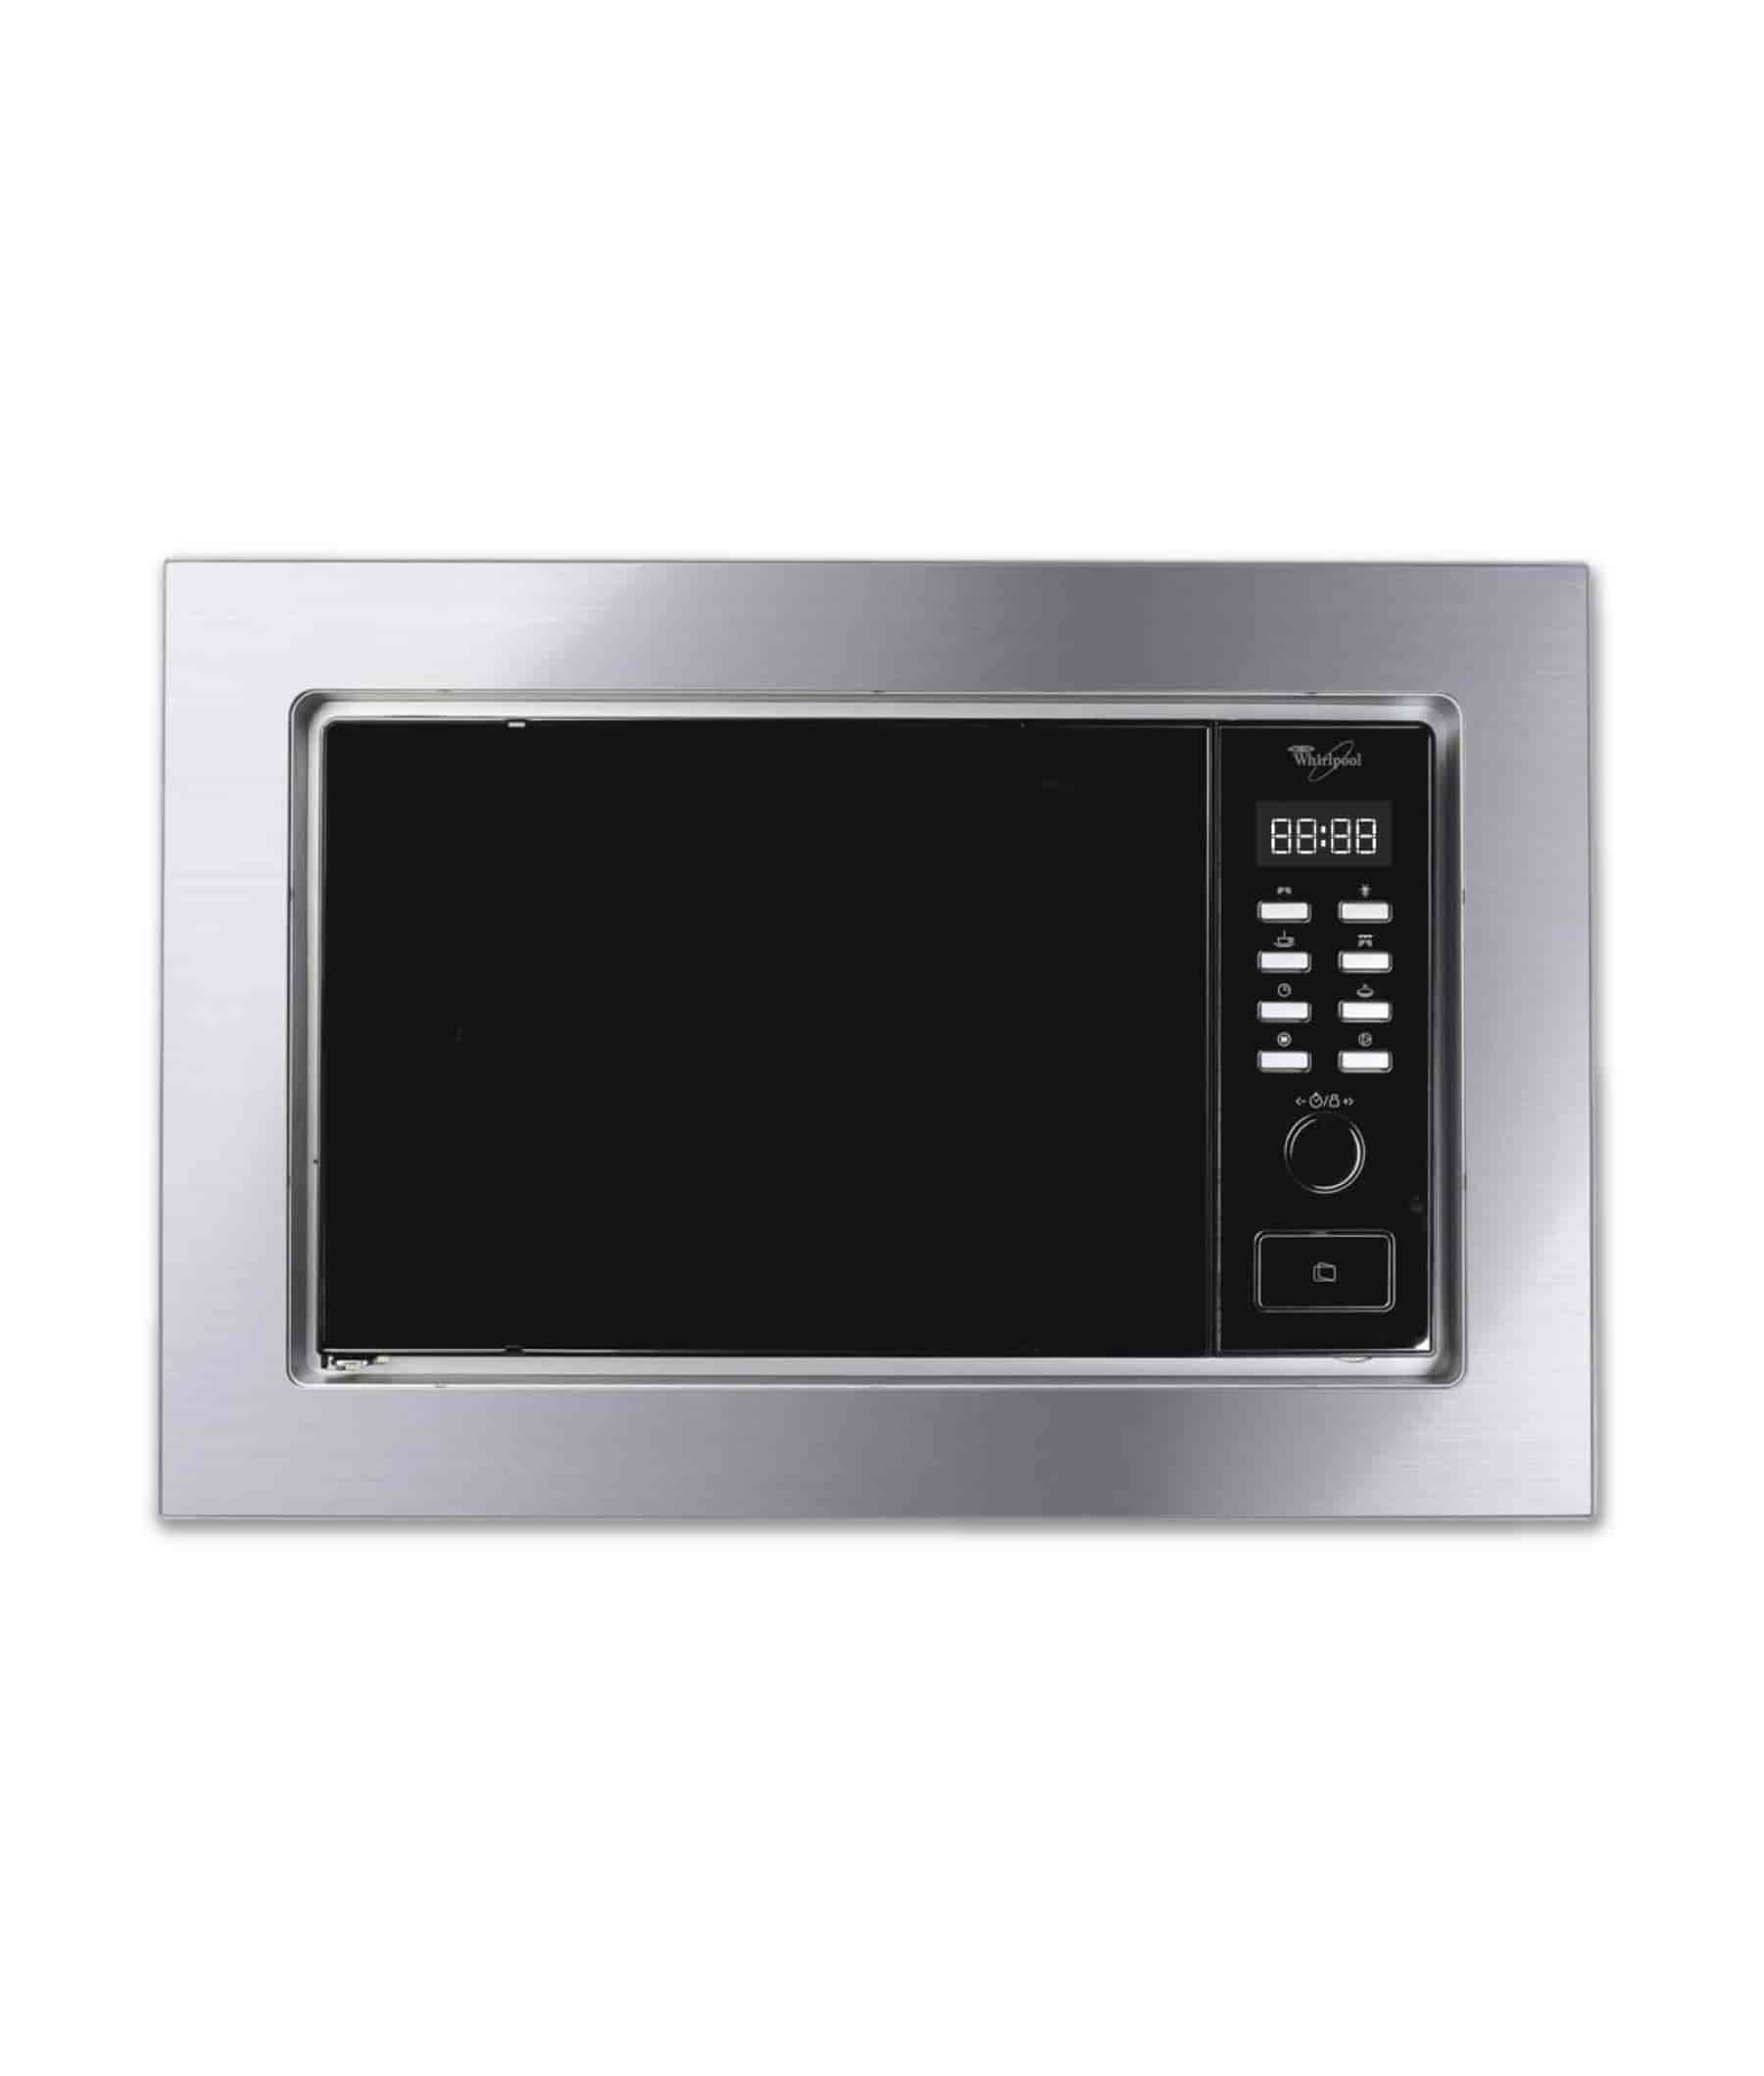 Whirlpool 20 Litres Built In Microwave Oven Stainless Steel Cb 2068 Ix